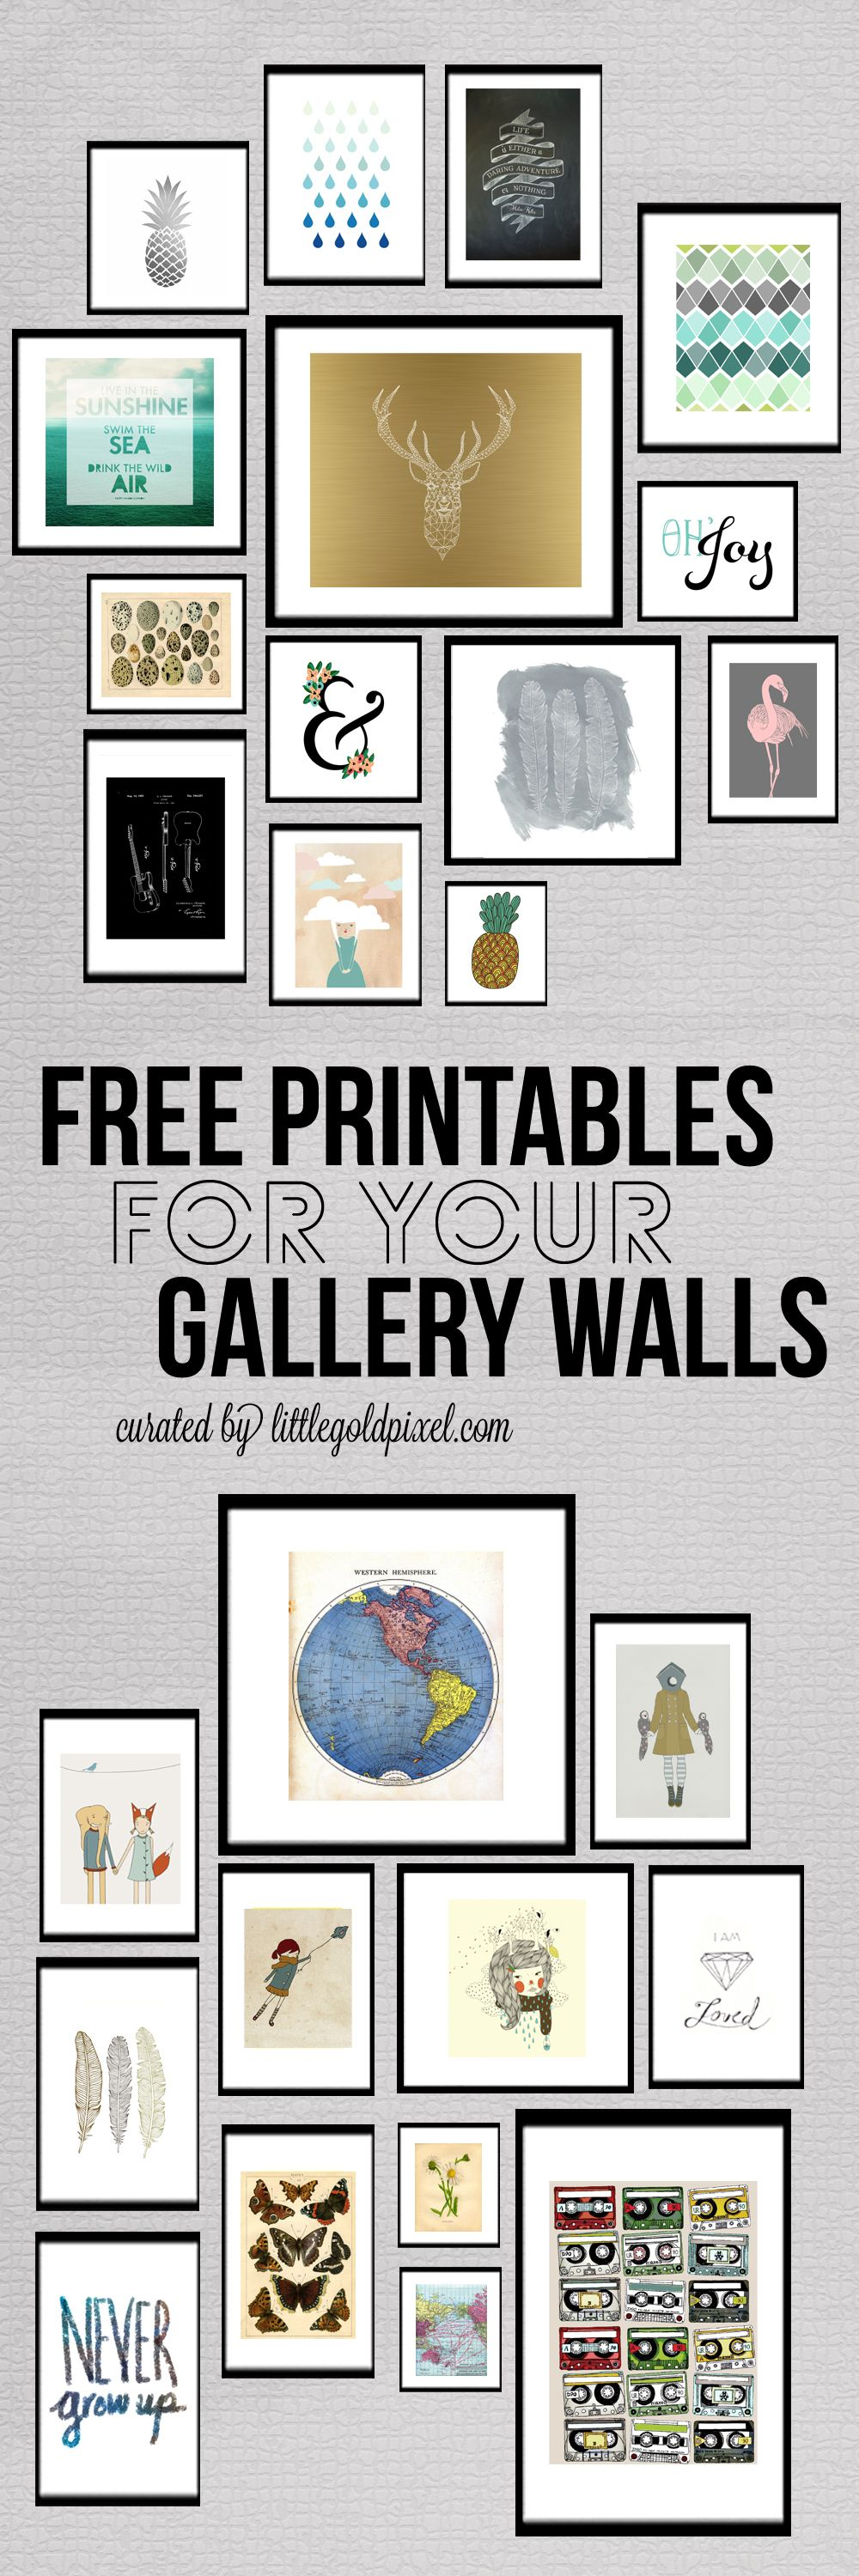 Roundup Free Printables For Gallery Walls Home